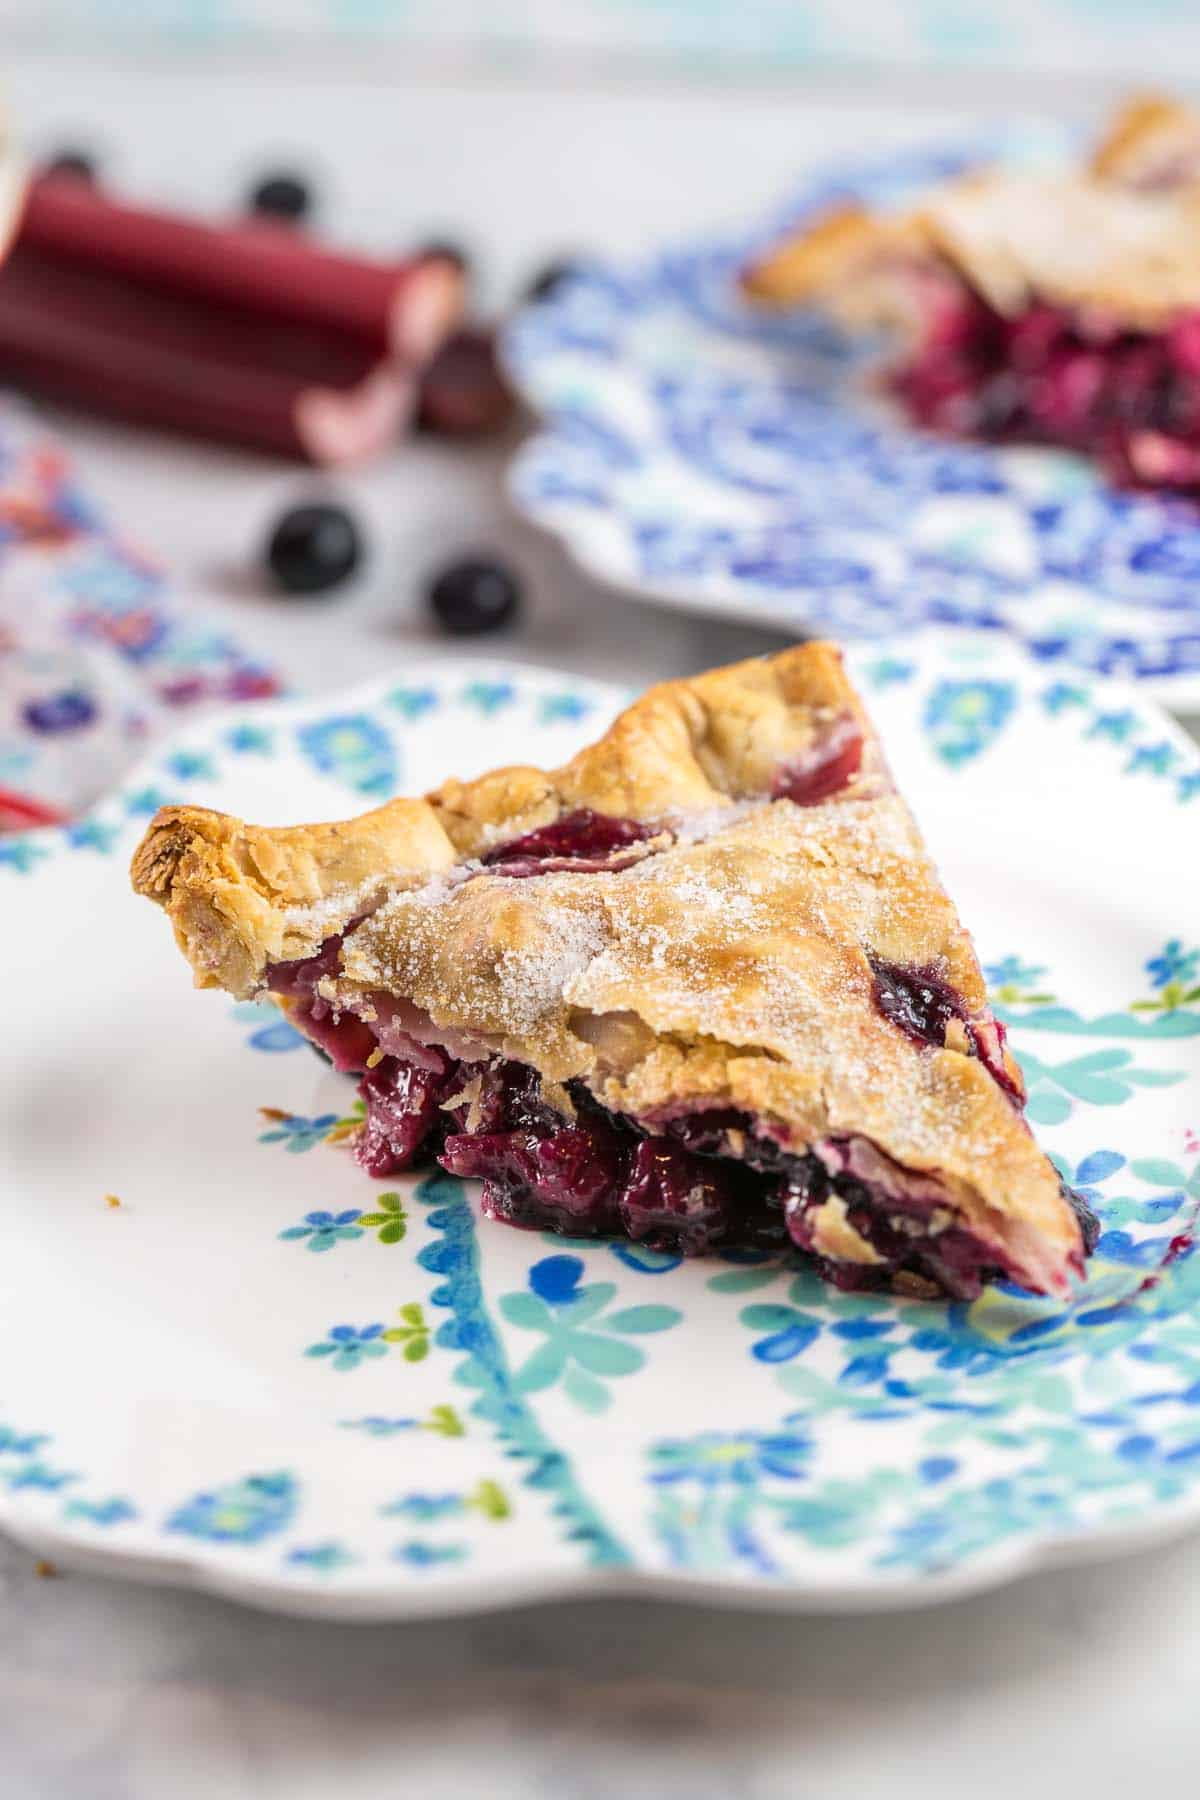 Blueberry Rhuarb Pie: Move over, strawberries - there's a new perfect pairing for rhubarb. Full of juicy blueberries, this bluebarb pie is the perfect summer dessert. {Bunsen Burner Bakery} #pie #rhubarb #blueberry #bluebarb